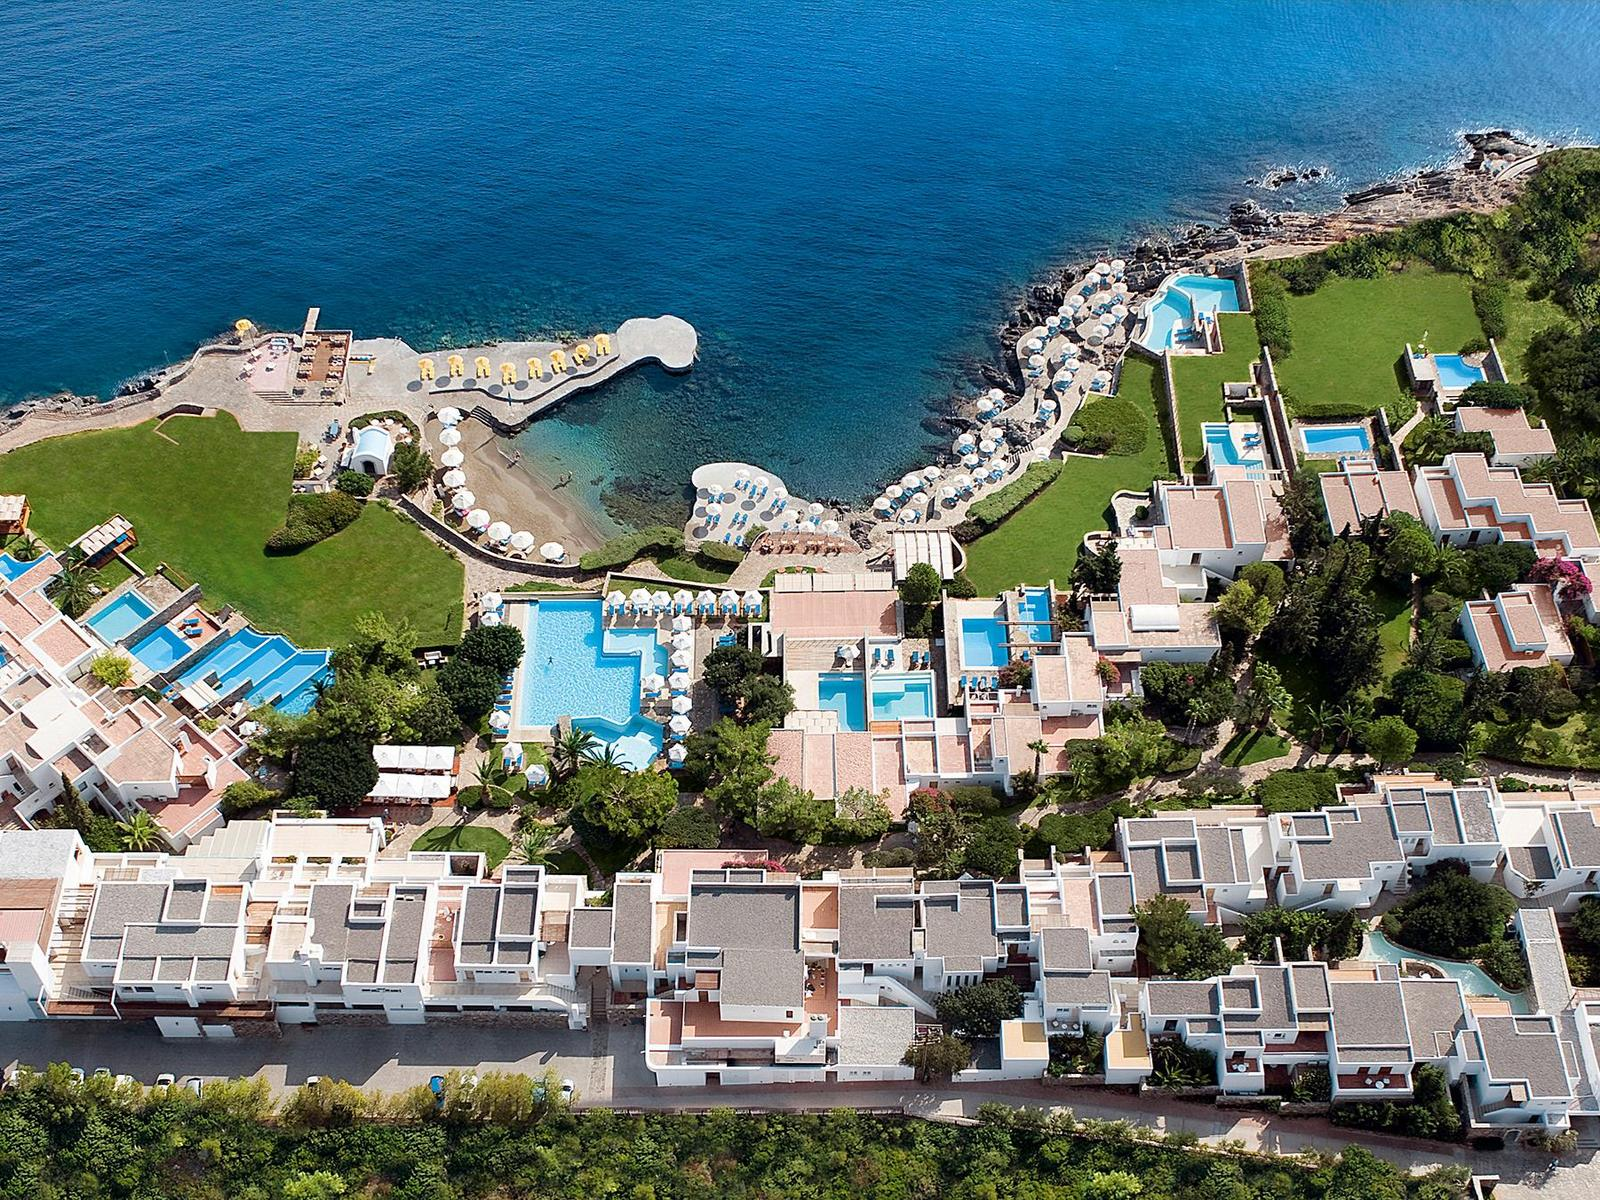 St-Nicolas-Bay-Resort-Hotel-and-Villas